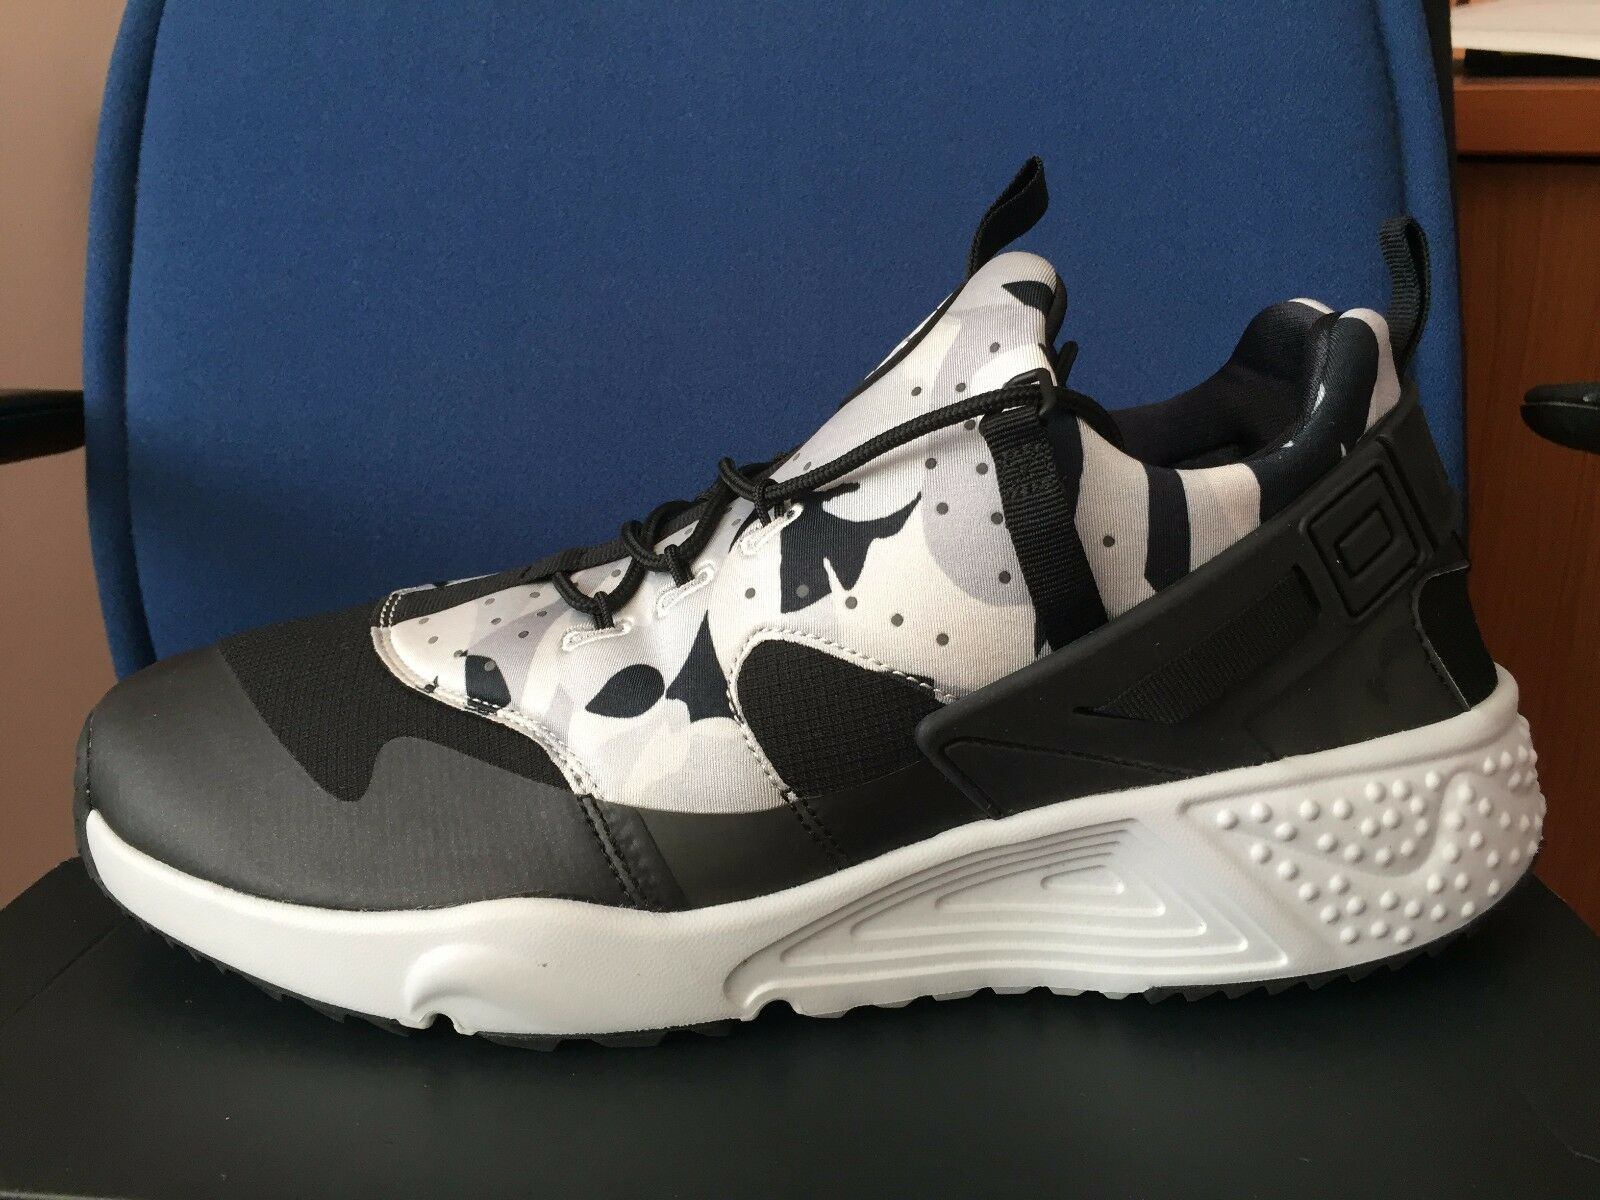 Nike Air Huarache Utility CAMO sz 15 Black White Grey Mens Run Shoes 806807-001